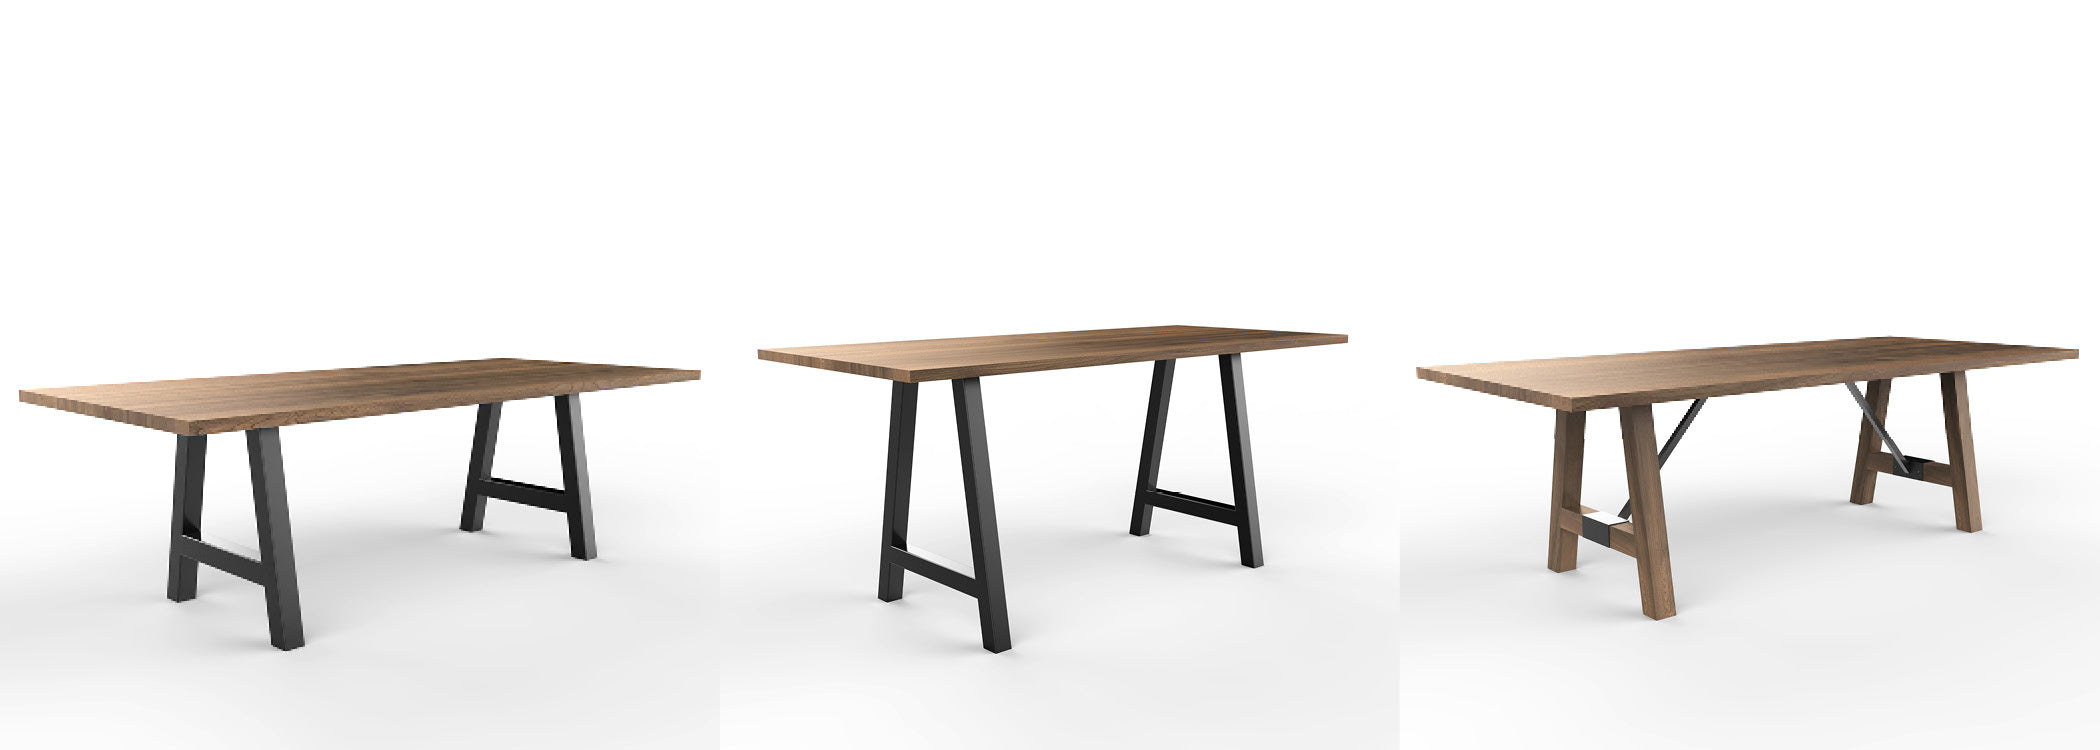 Wood and metal tables with technology - new products